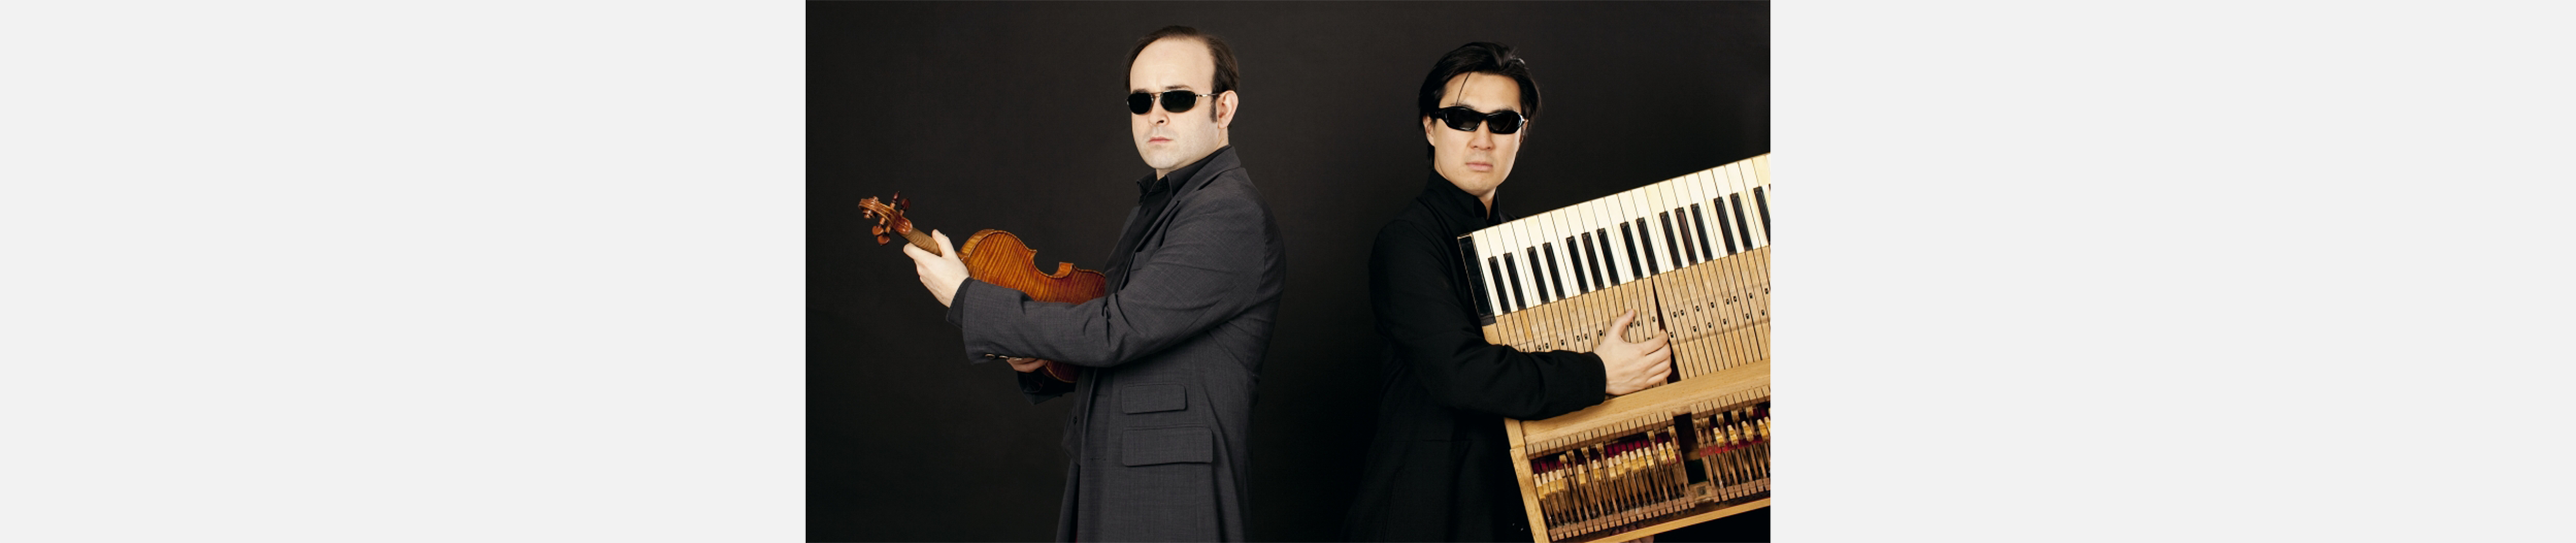 BIG Nightmare Music: Igudesman and Joo plays Mozart, Rachmaninov, Bach, Vivaldi, Strauss, Beethoven, Igudesman and Joo